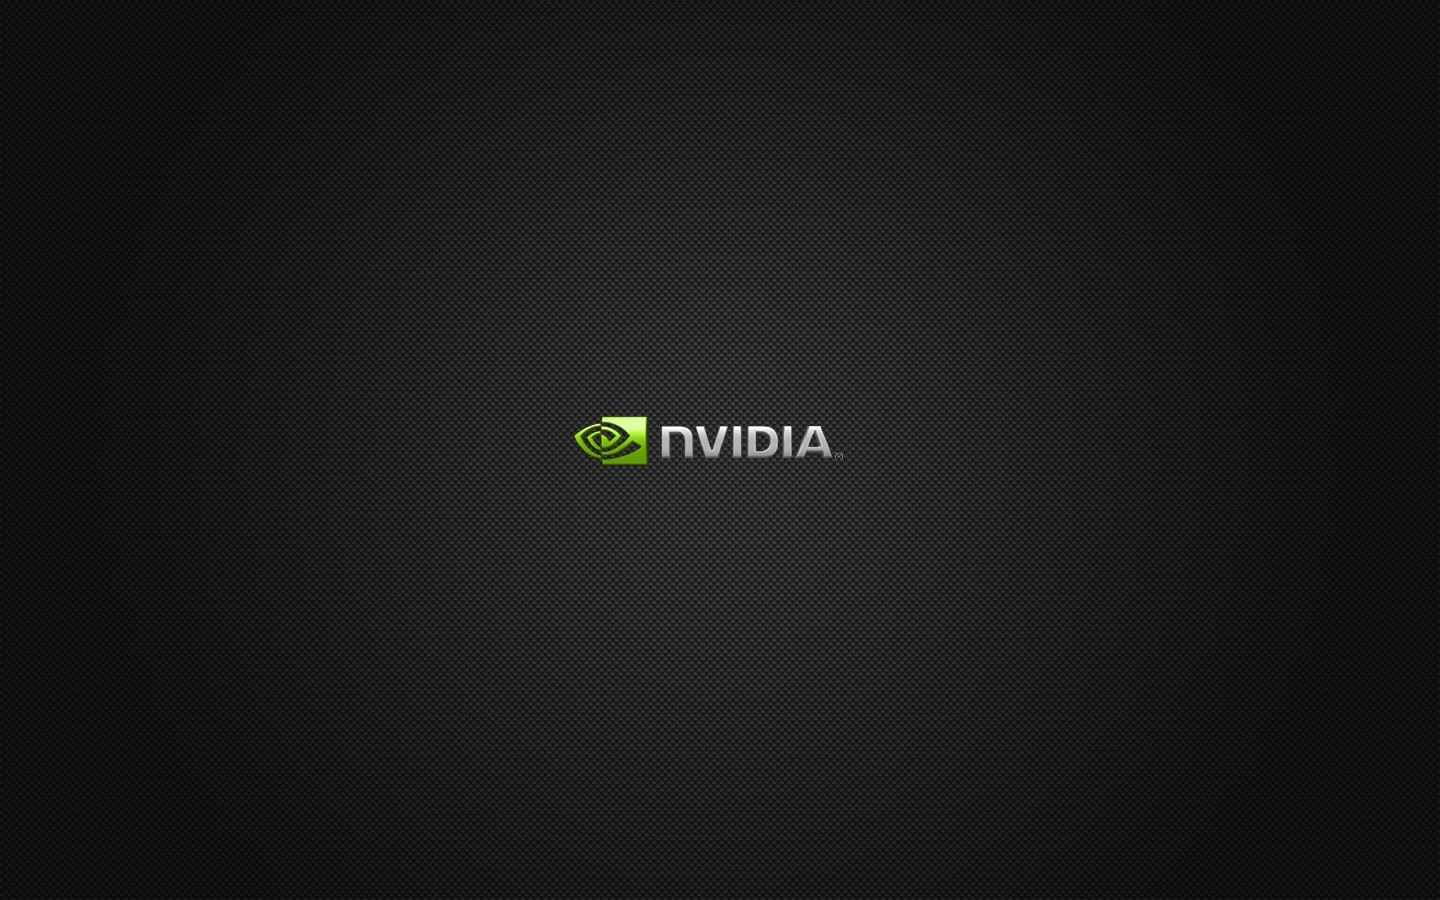 Ultra Hd Wallpapers For Iphone Nvidia Wallpapers Pictures Images